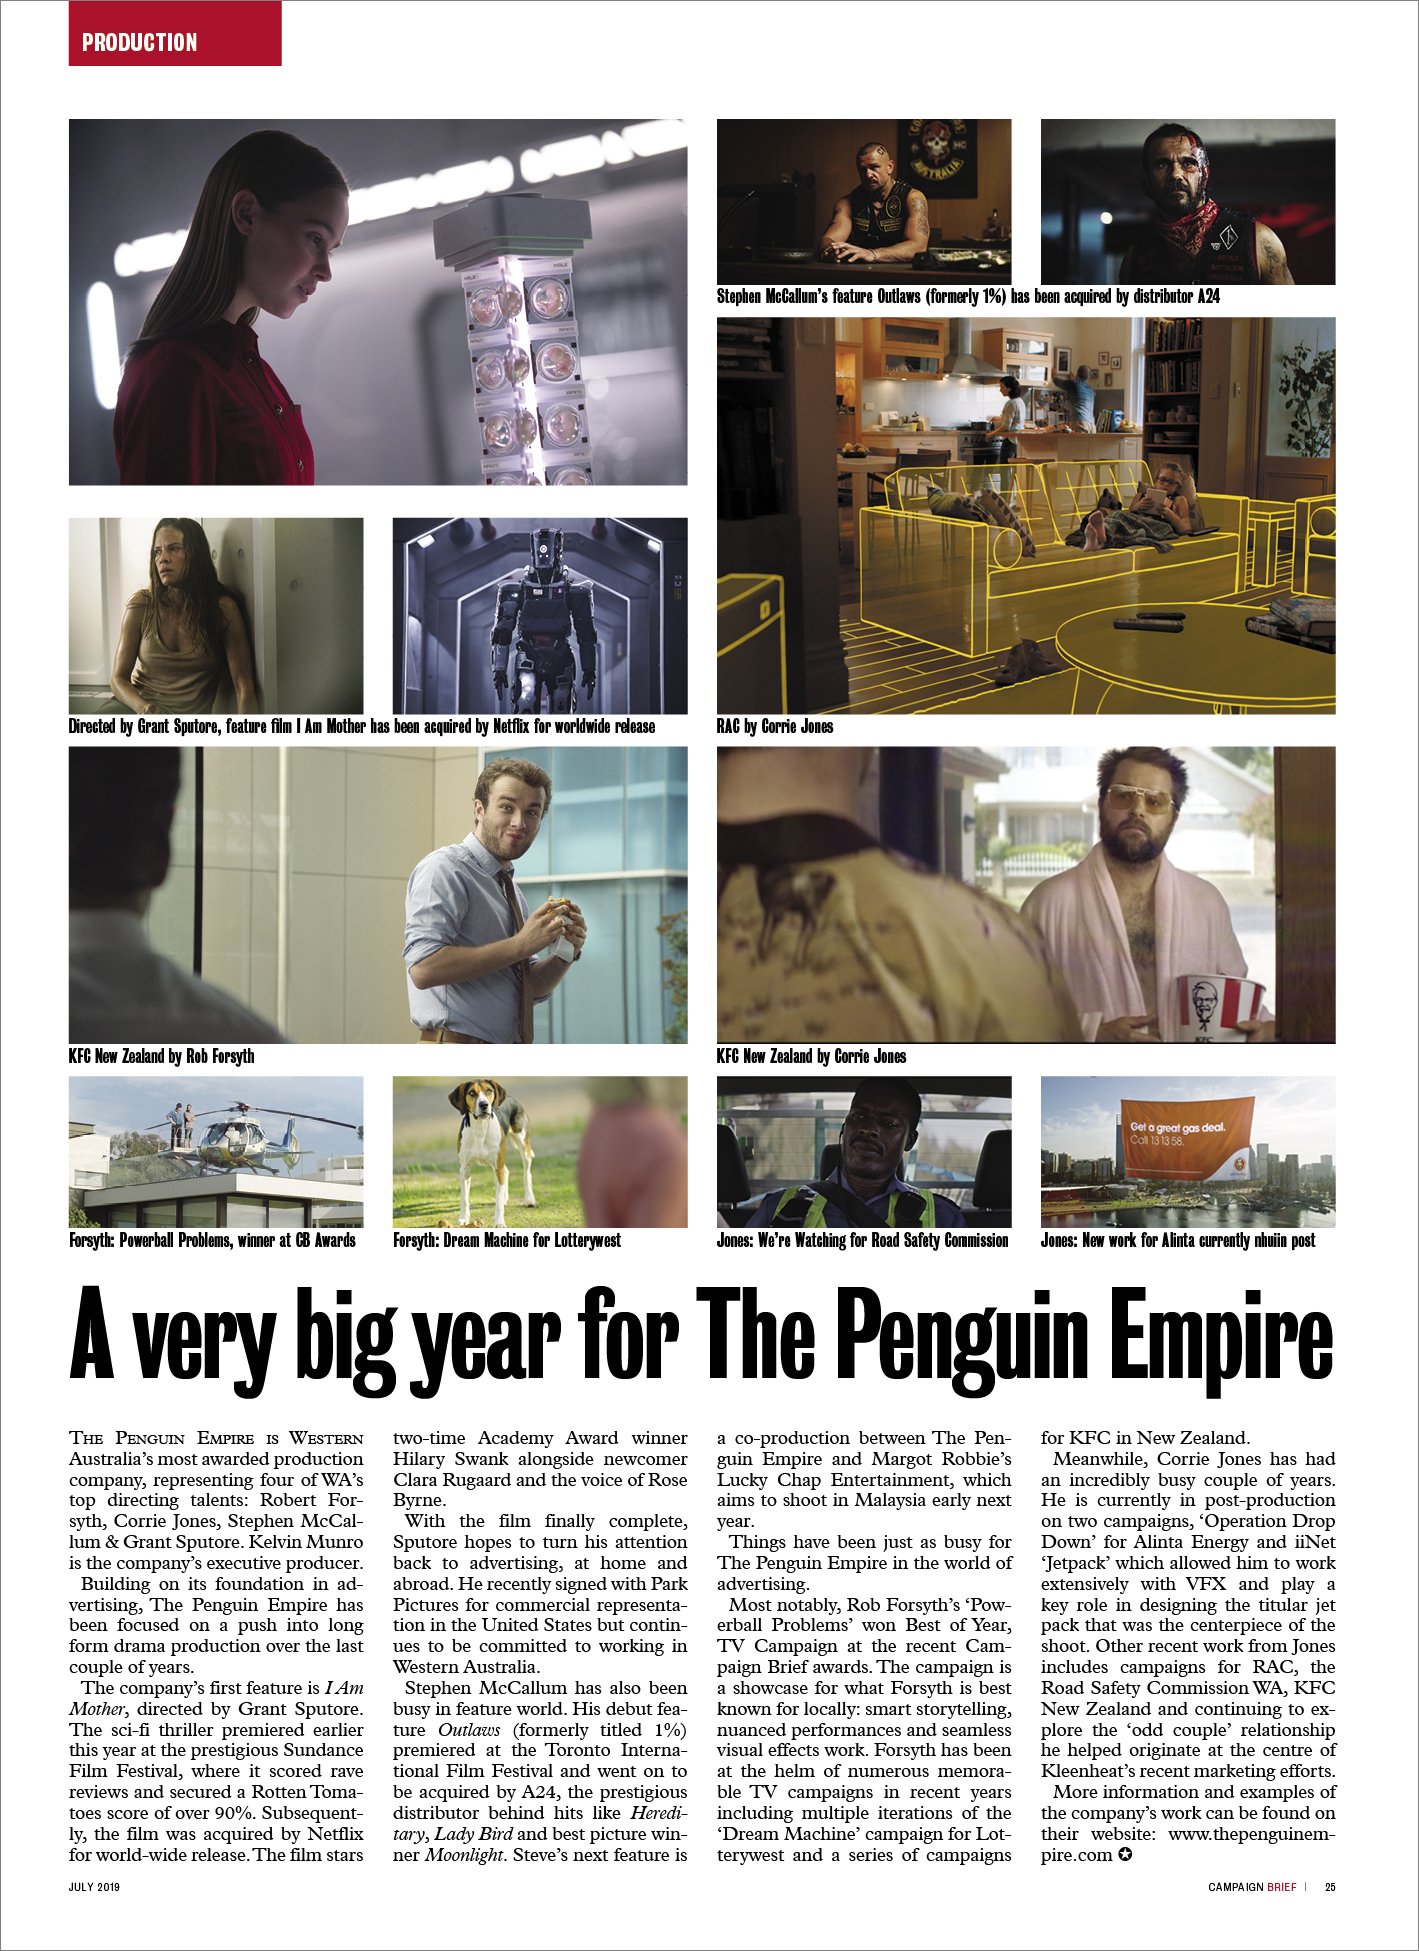 A very big year for The Penguin Empire